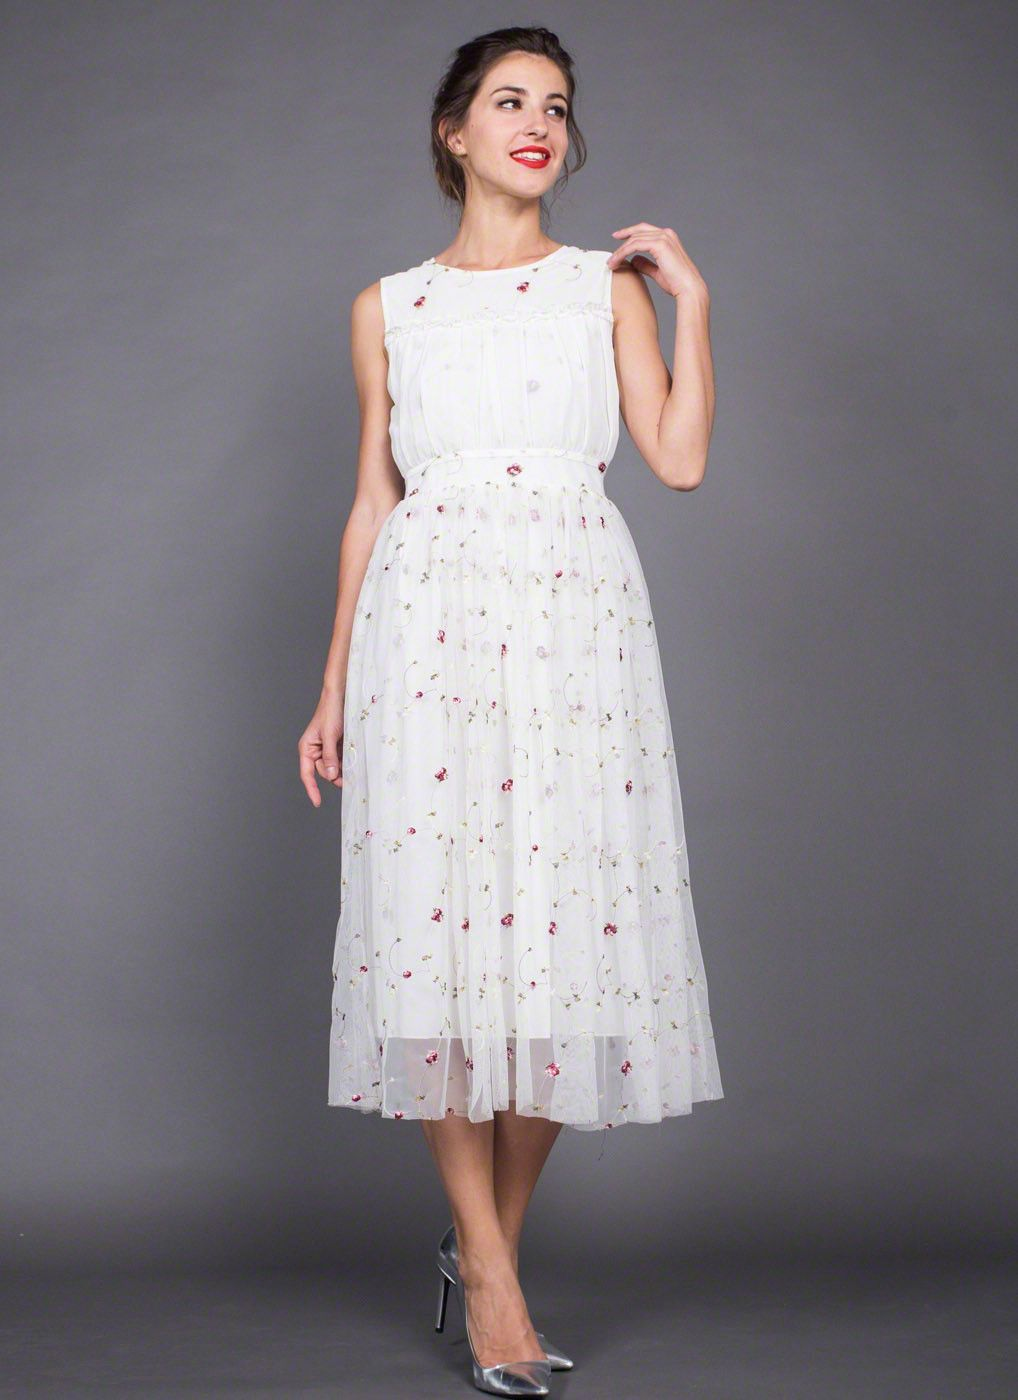 White embroidered floral tulle lace midi dress with pleated top in